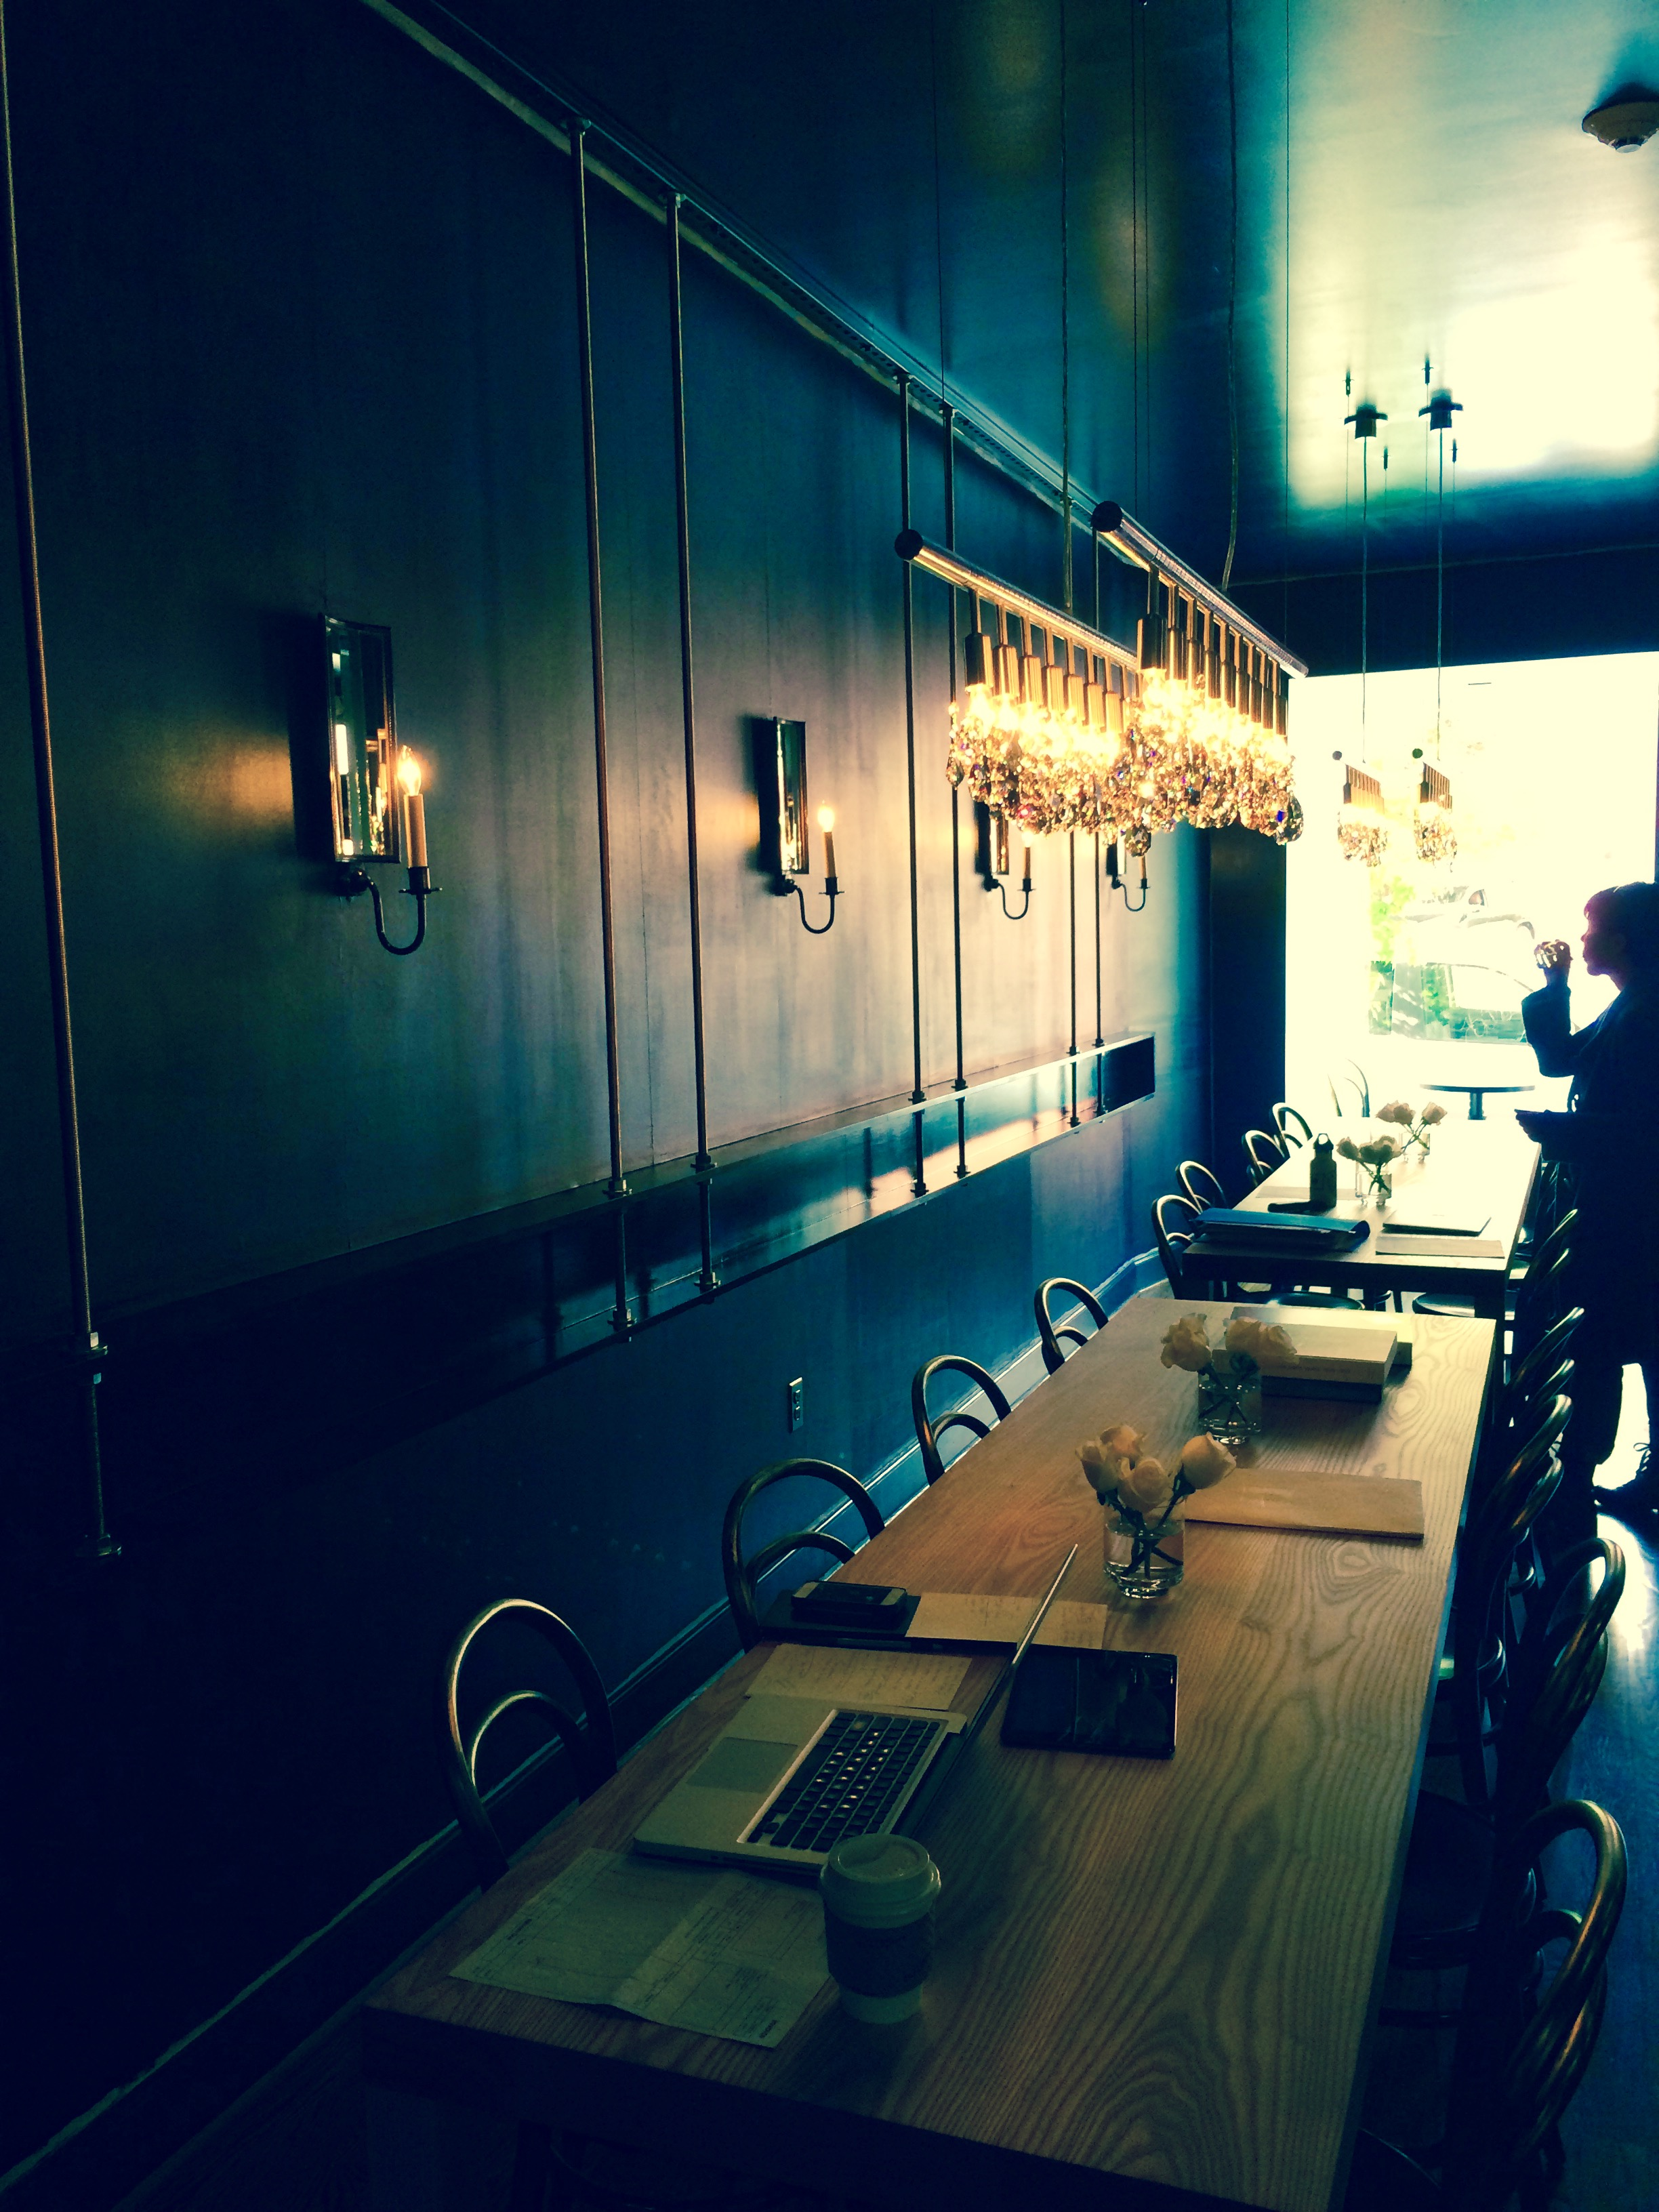 After Peacock Room interior  | Courtesy of Chef Sebastien Rondier